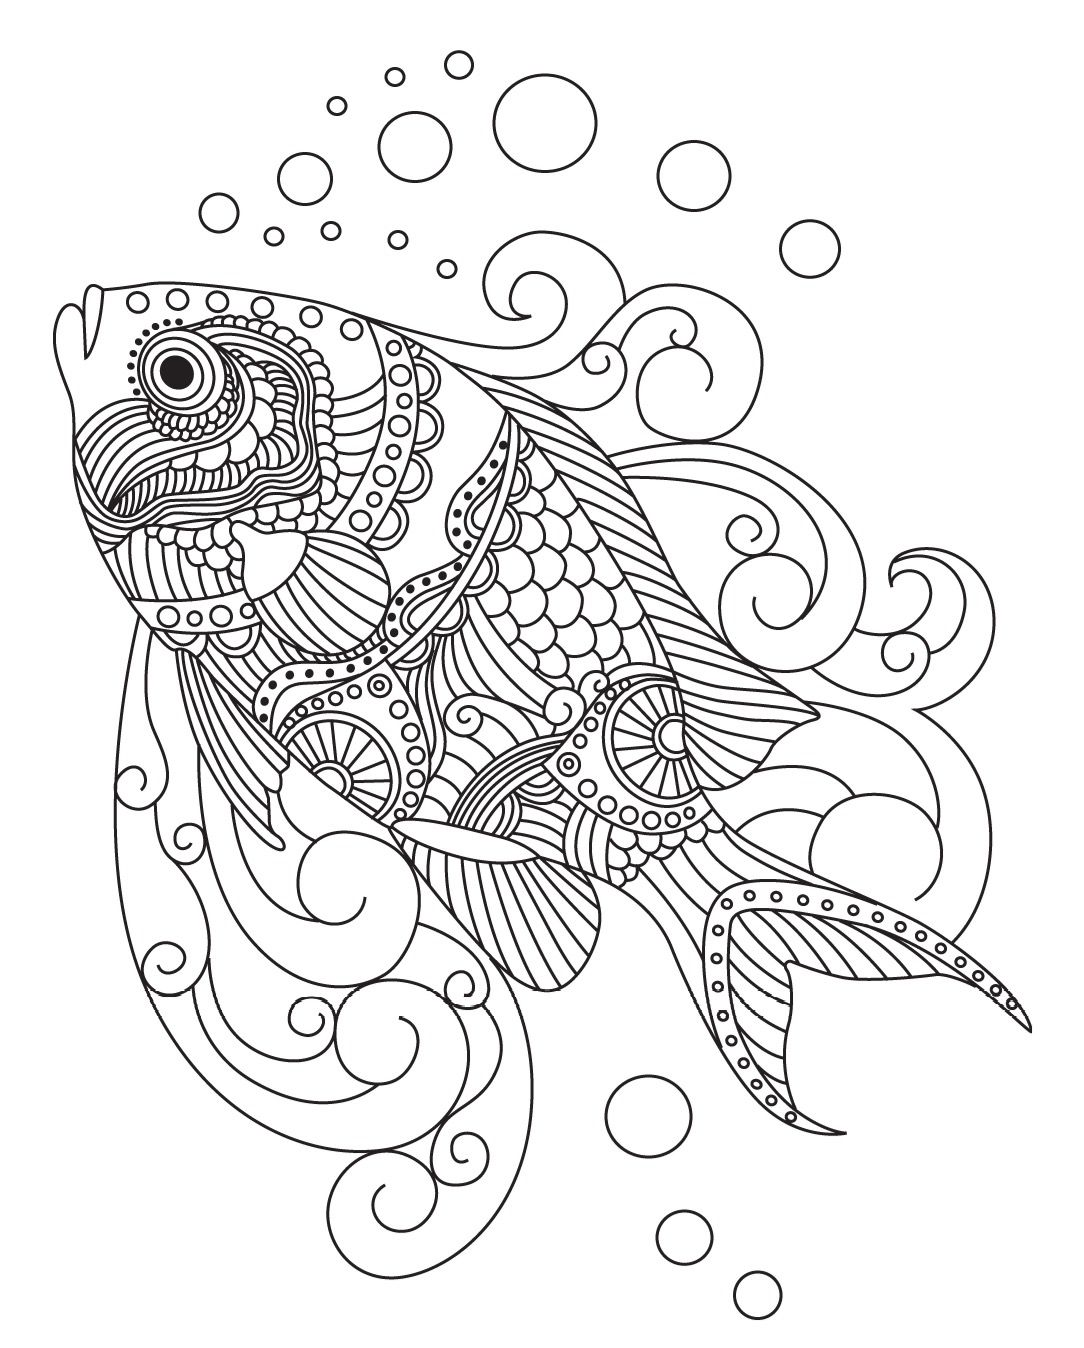 Under the sea coloring book for adults - Fish Colorish Coloring Book For Adults Mandala Relax By Goodsofttech